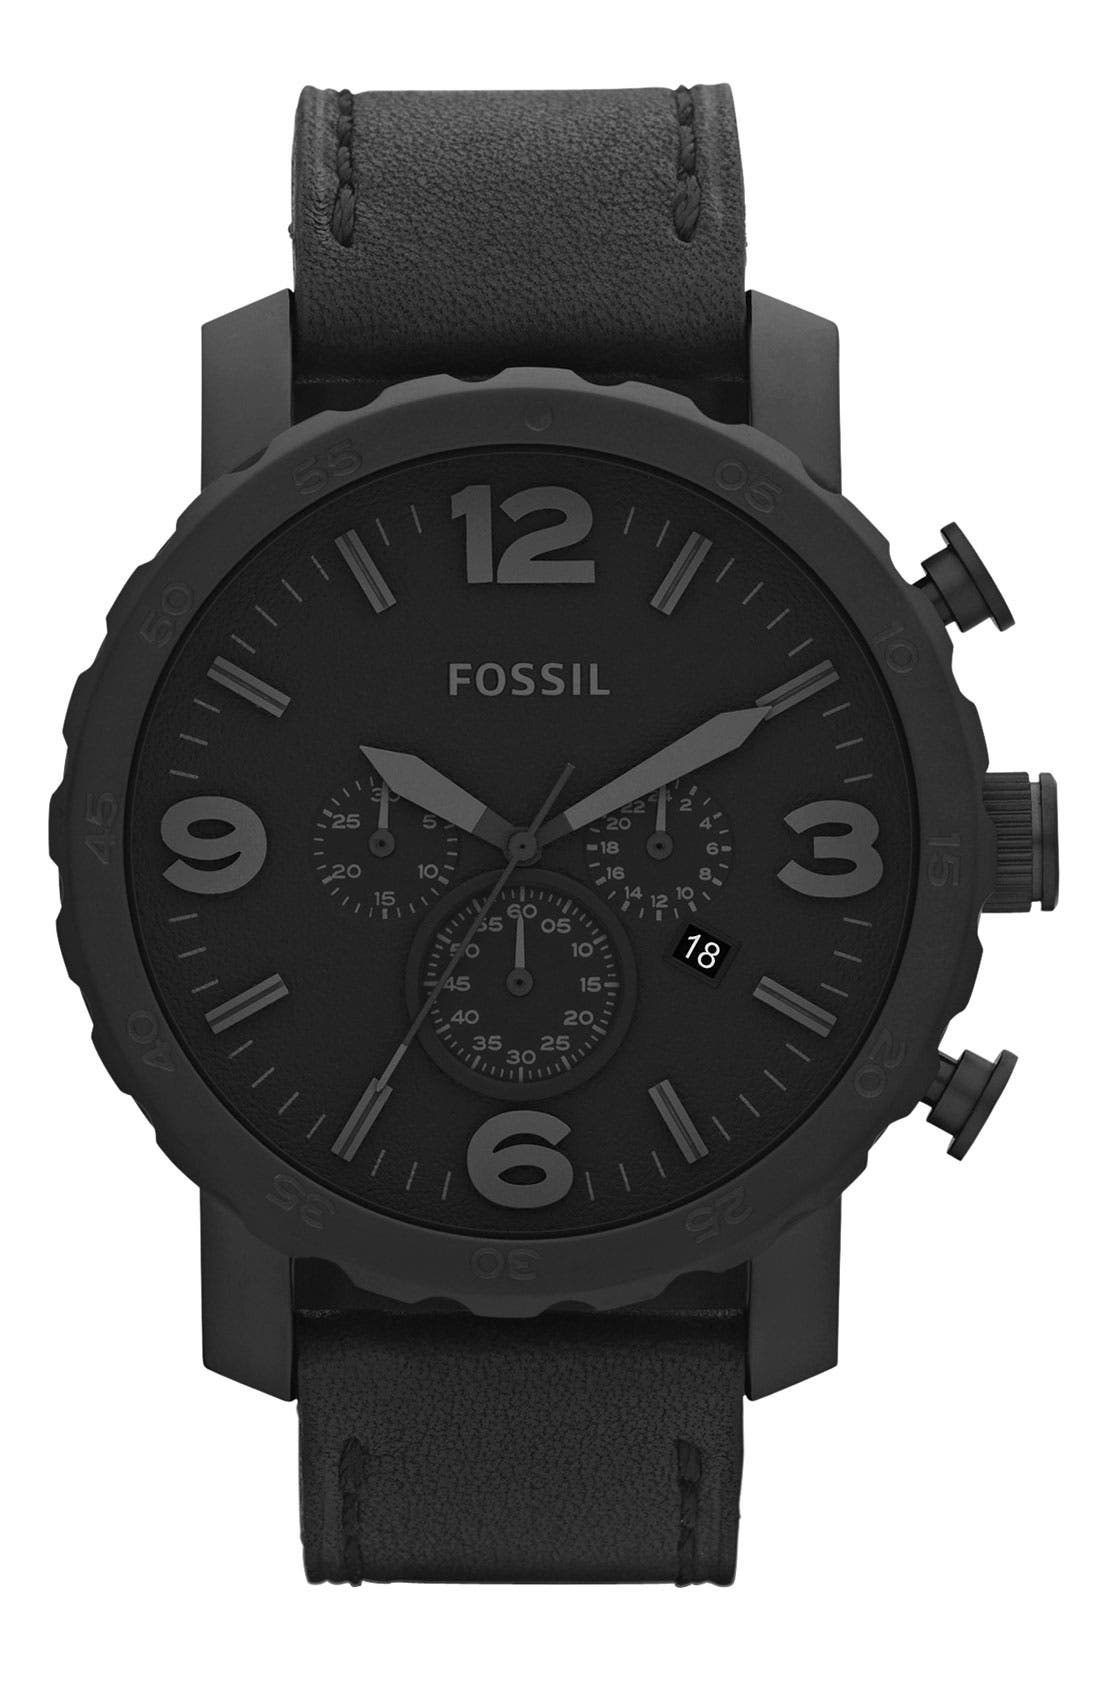 FOSSIL, 'Nate IP' Chronograph Watch, 50mm, Main thumbnail 1, color, 001